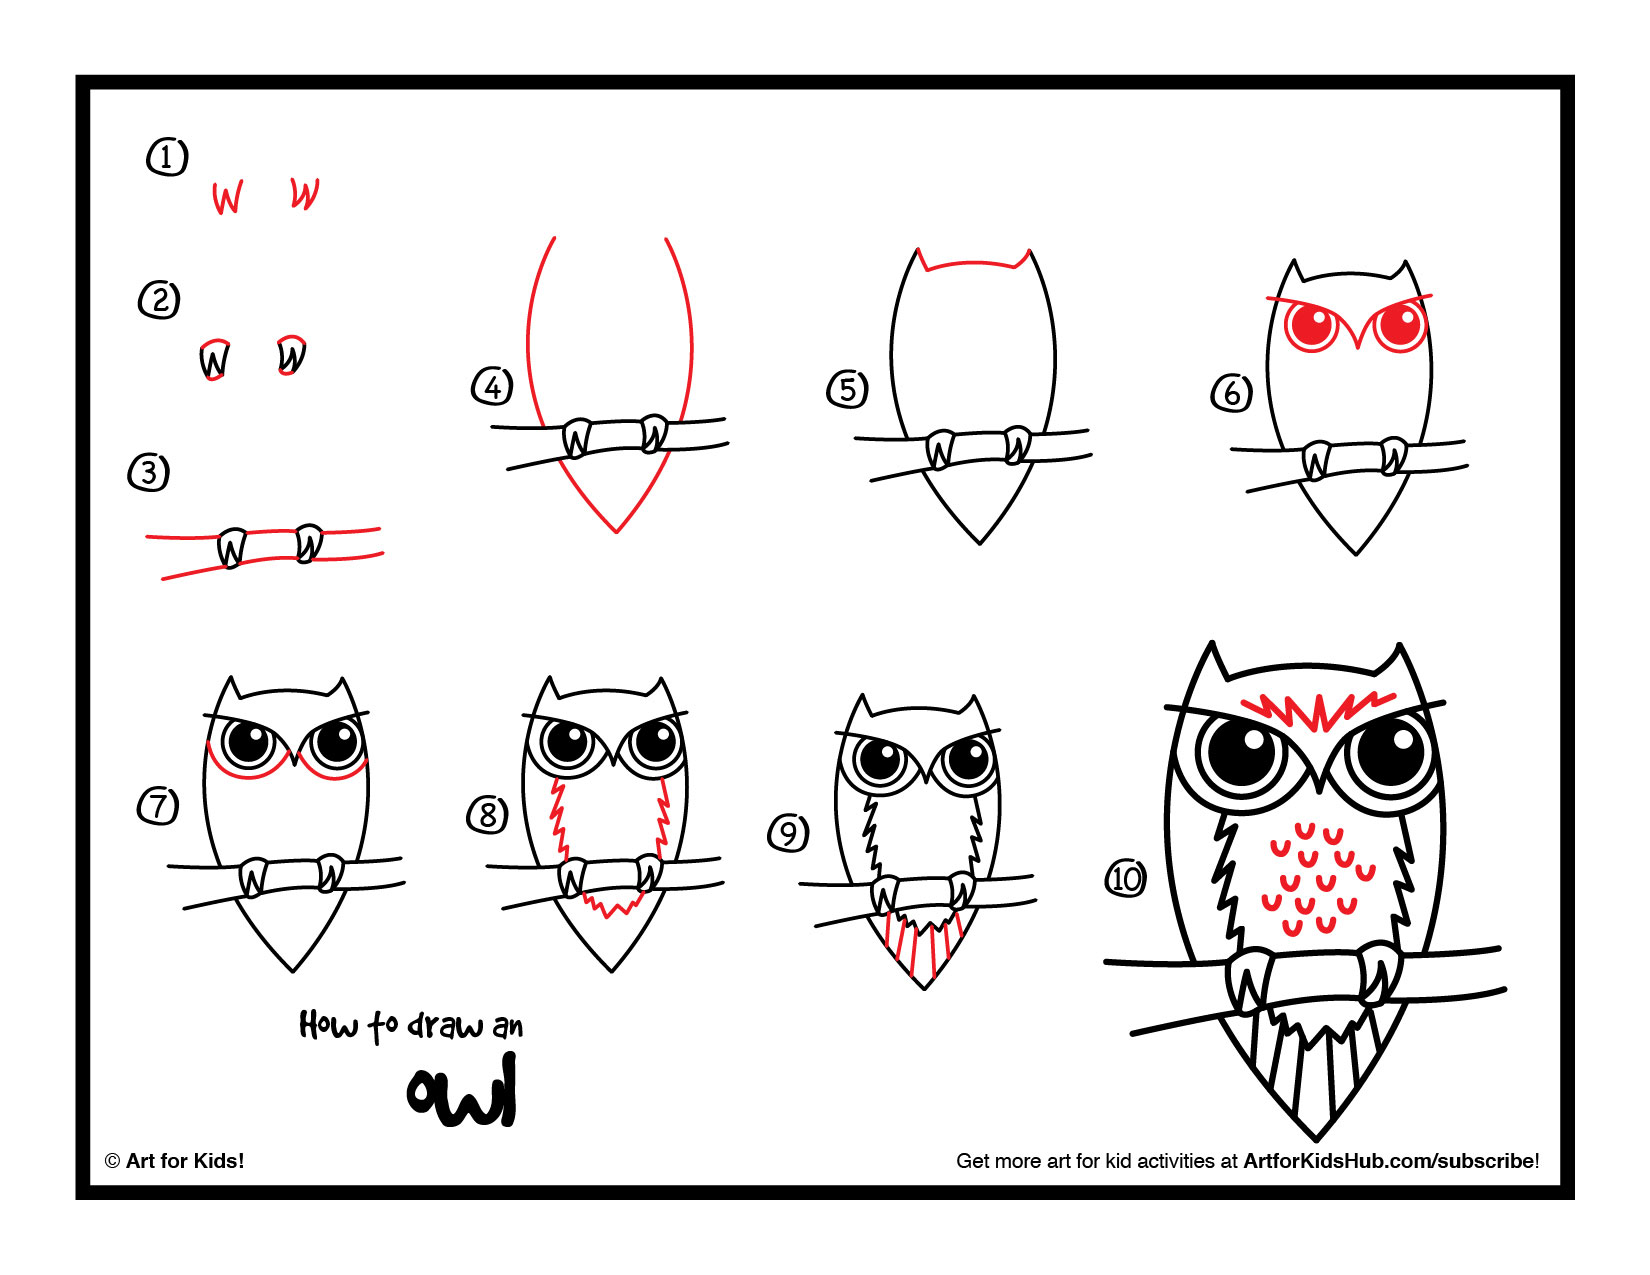 How To Draw An Owl Art For Kids Hub Cliparts Co